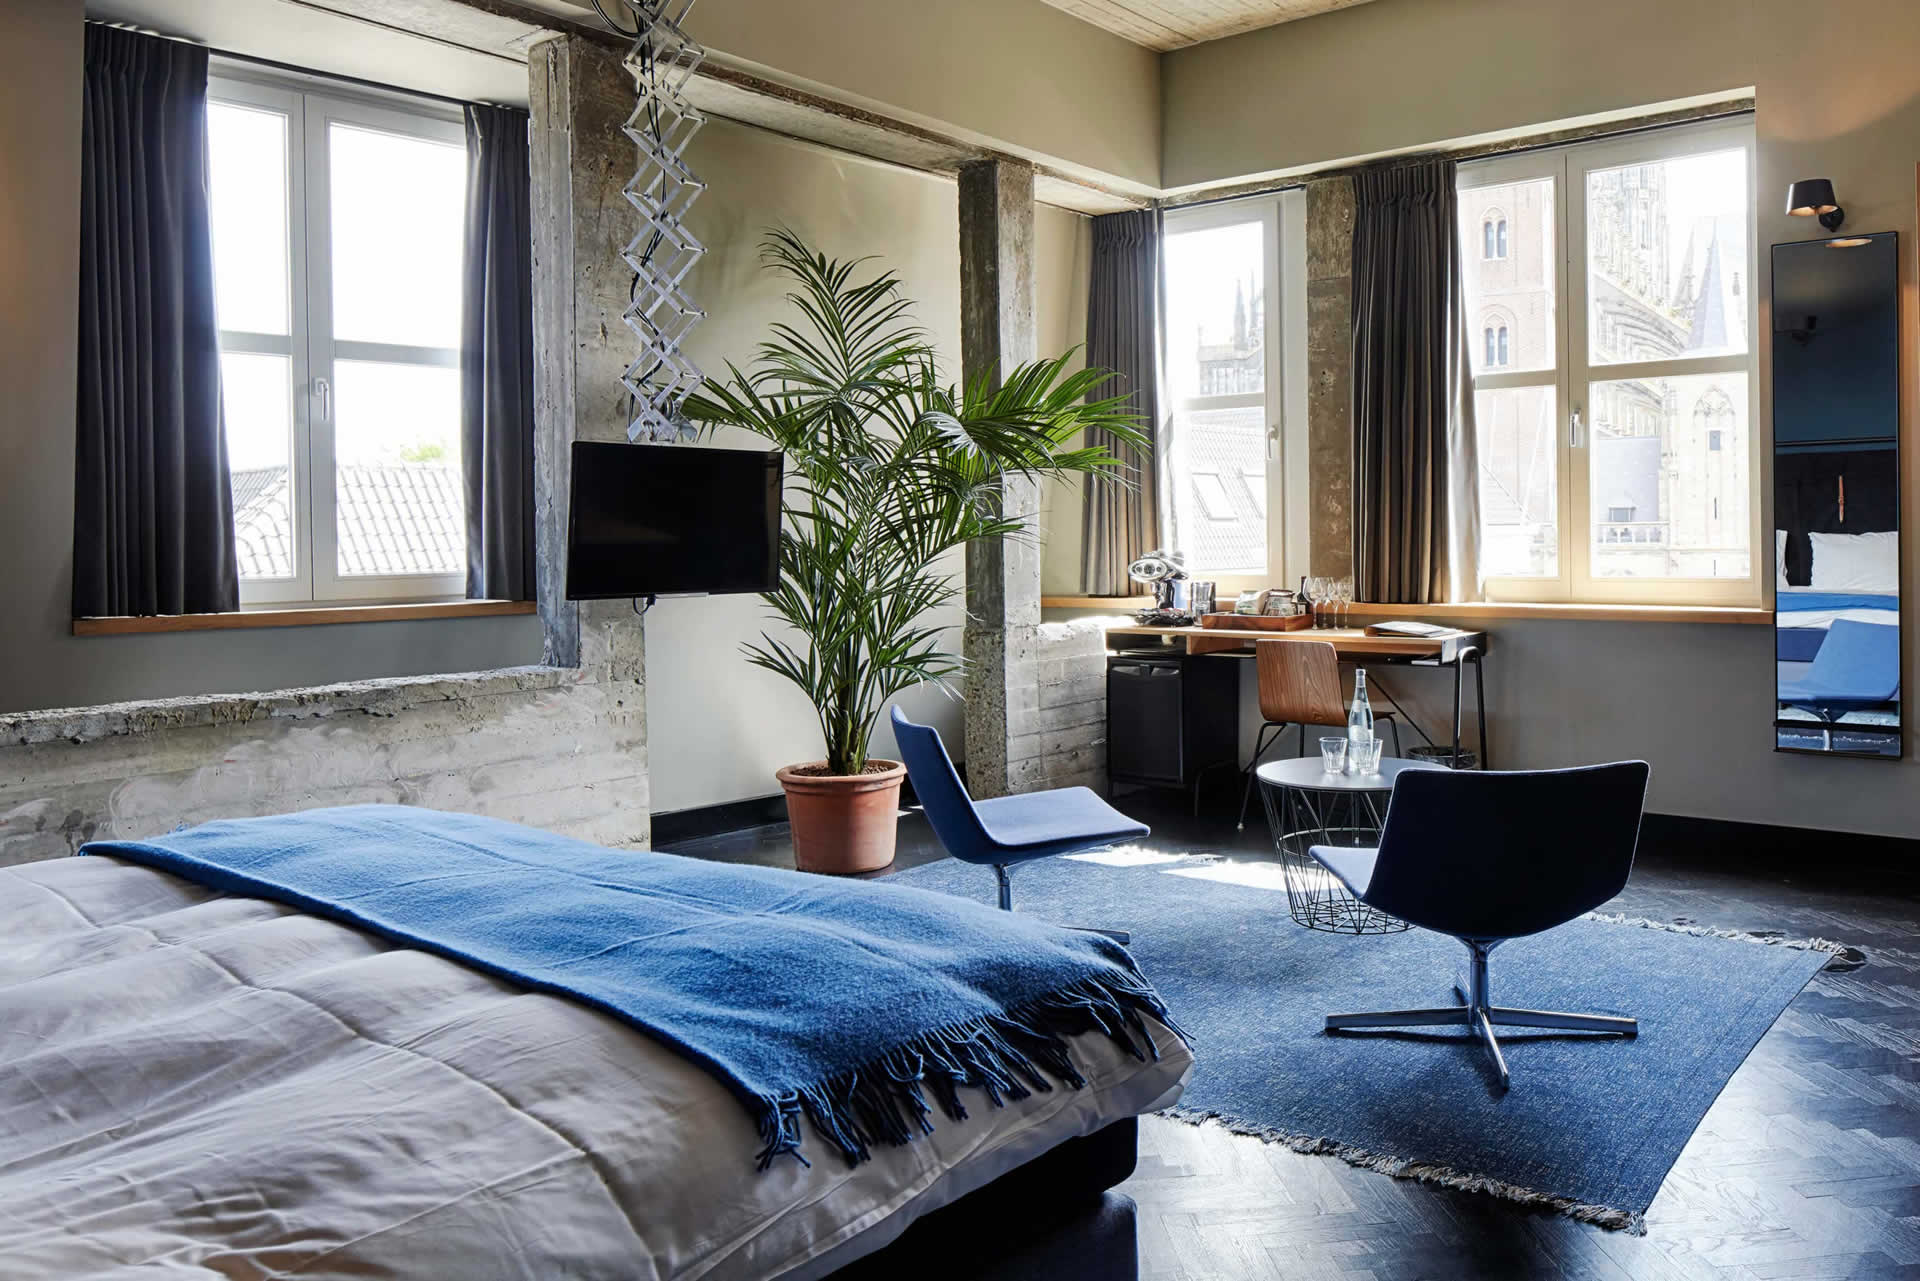 The duke boutique hotel in den bosch for Design boutique hotel rimini